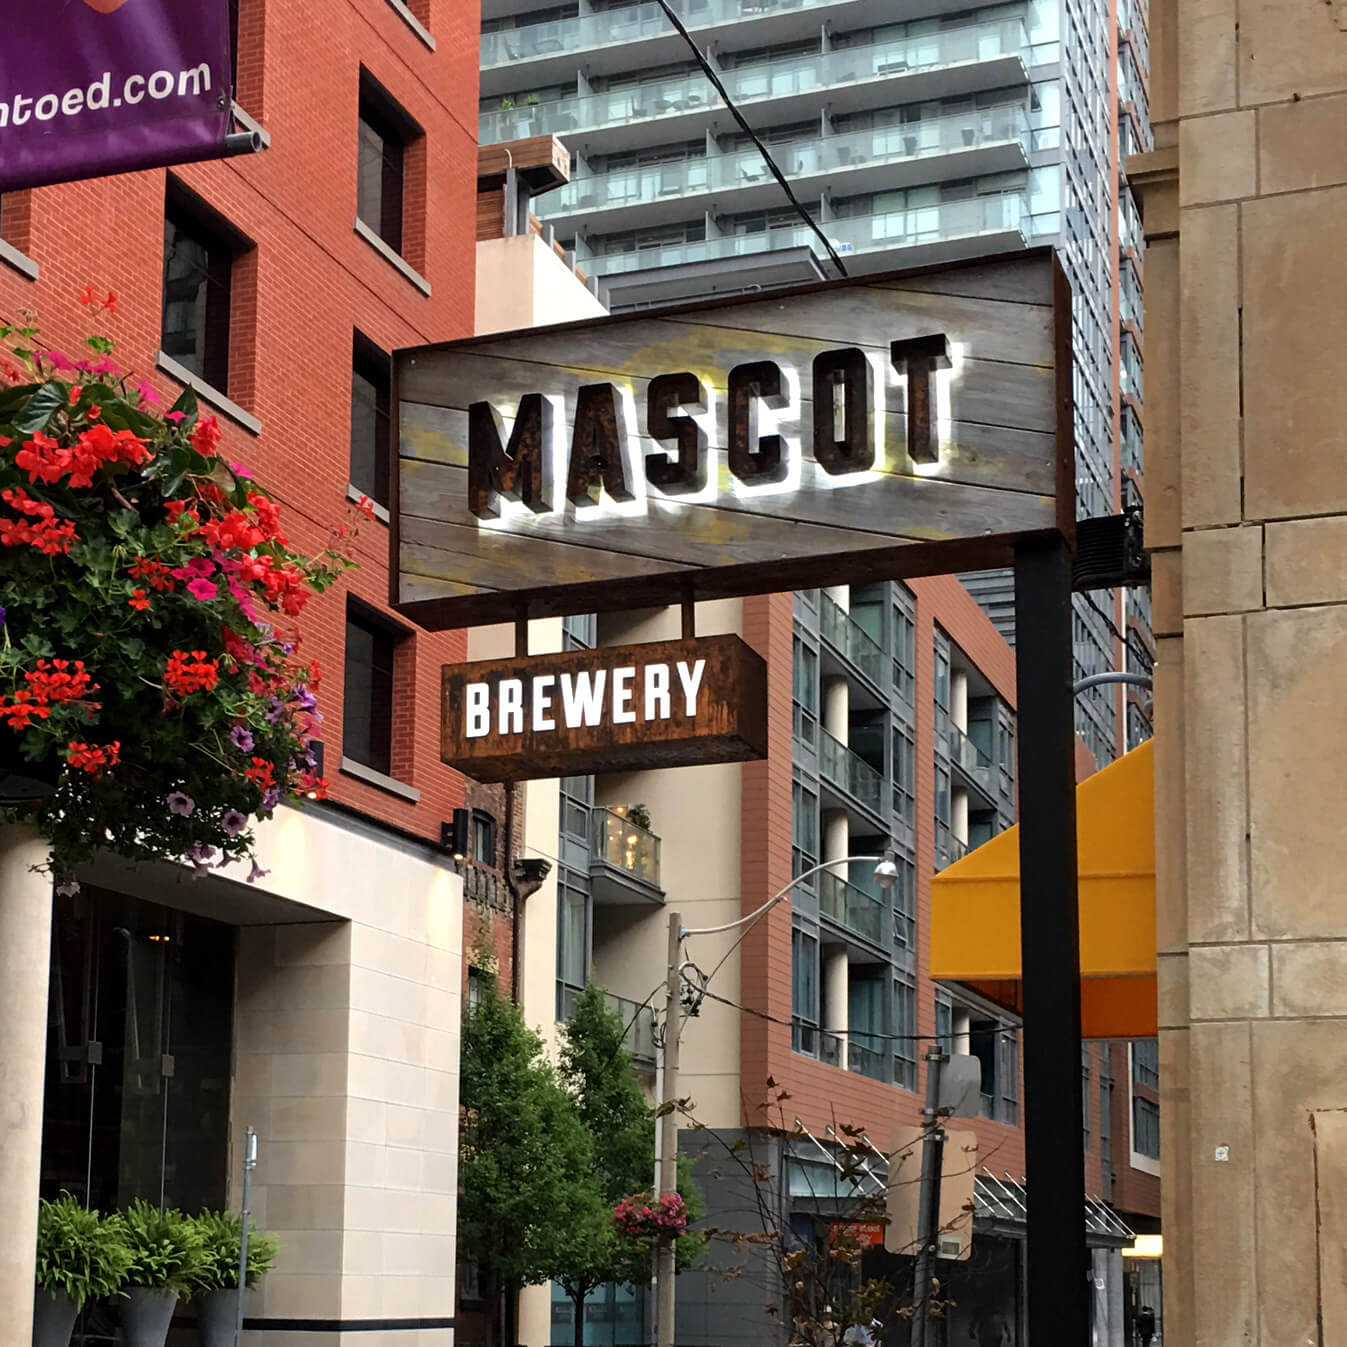 A sign custom-made for Mascot Brewery.